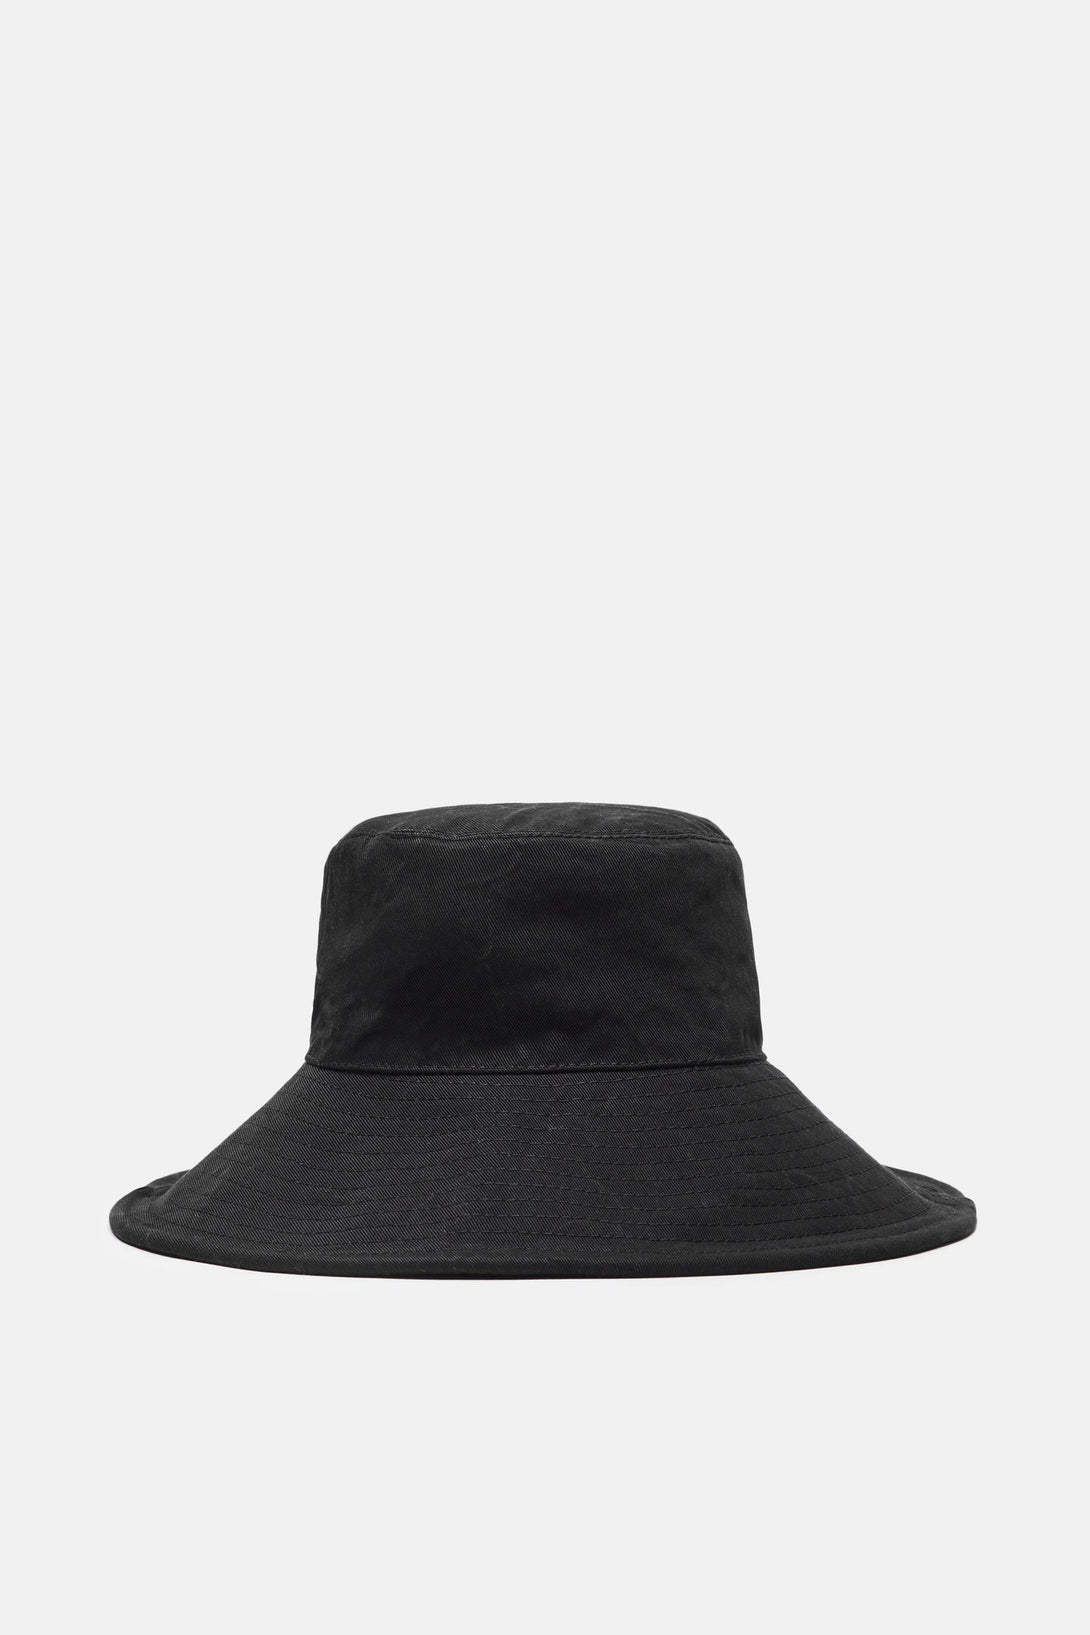 Bob Bucket Hat - Black – The Line 71bab251507a